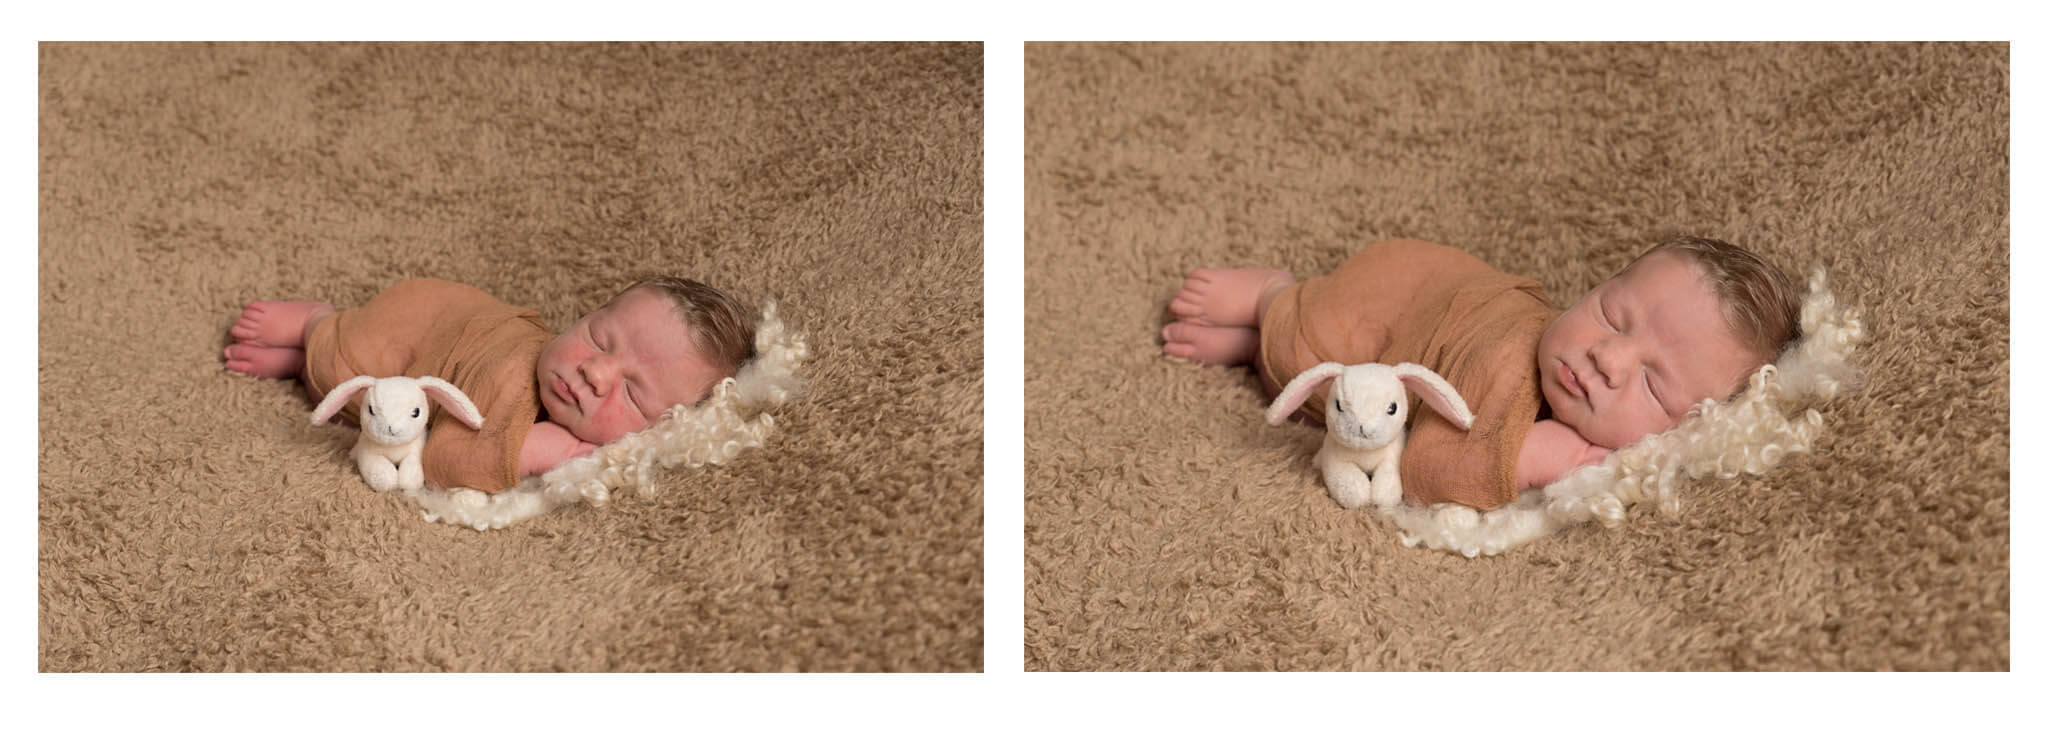 Slice of Life Photography -  before and after of newborn photography edit, Boston photography studio